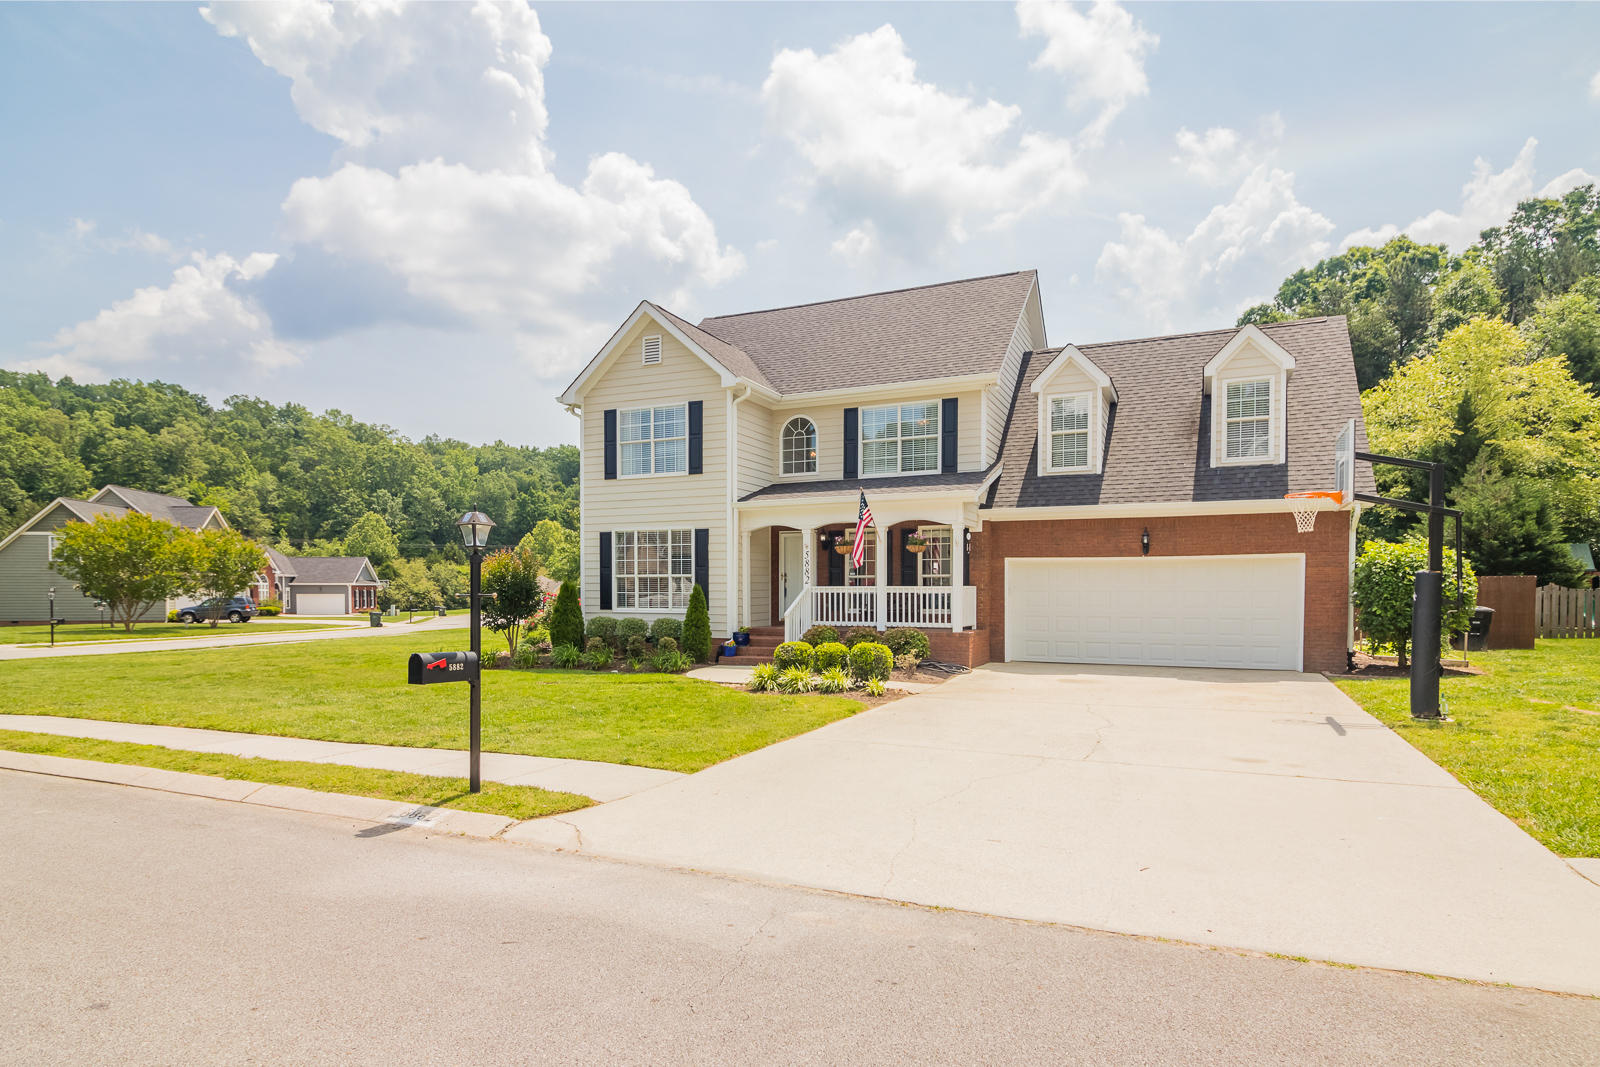 5882 Crooked Creek Dr, Ooltewah, TN 37363